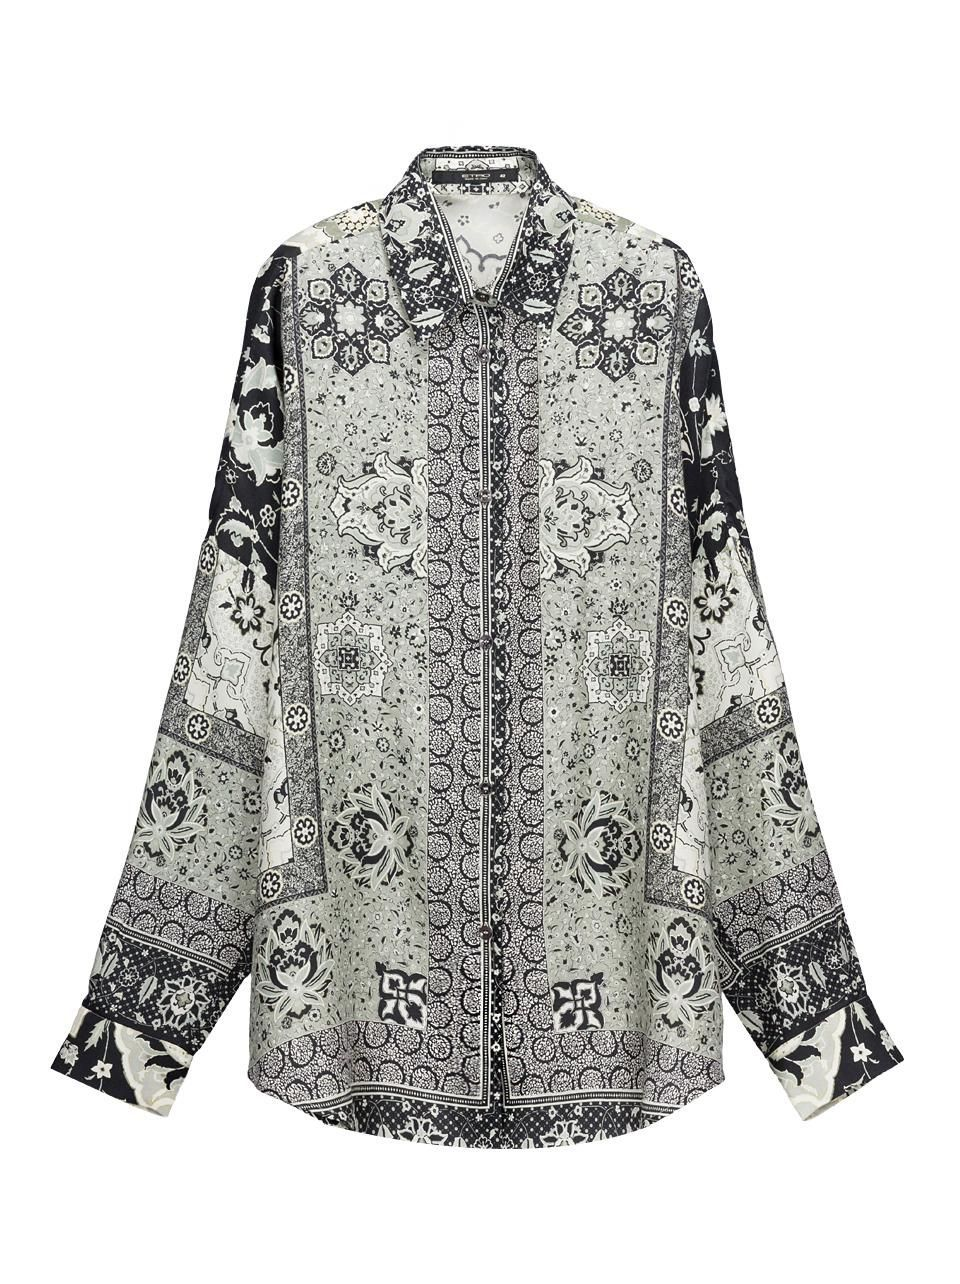 Shop Etro's women's shirts for the new season on the Official Website. Etro oversized shirt - Product Code: 142D1778351340001. Discover the Autumn Winter 14-15 Collection.